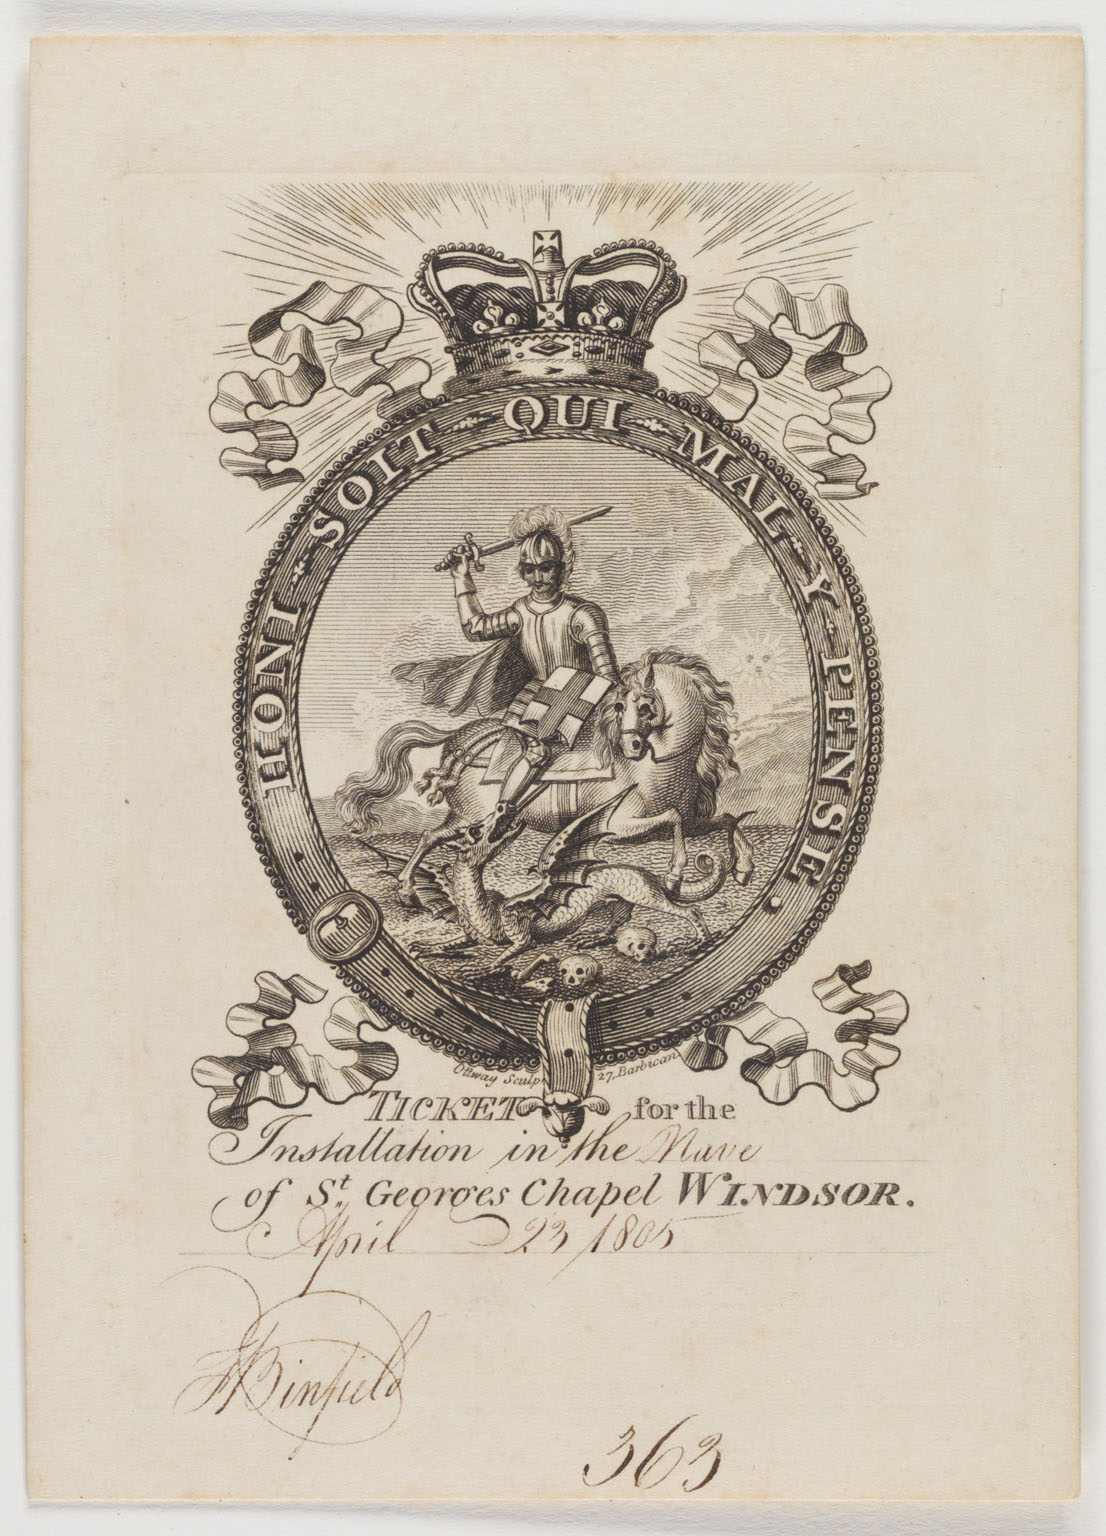 Ticket for the installation in the [blank] of St. George's chapel